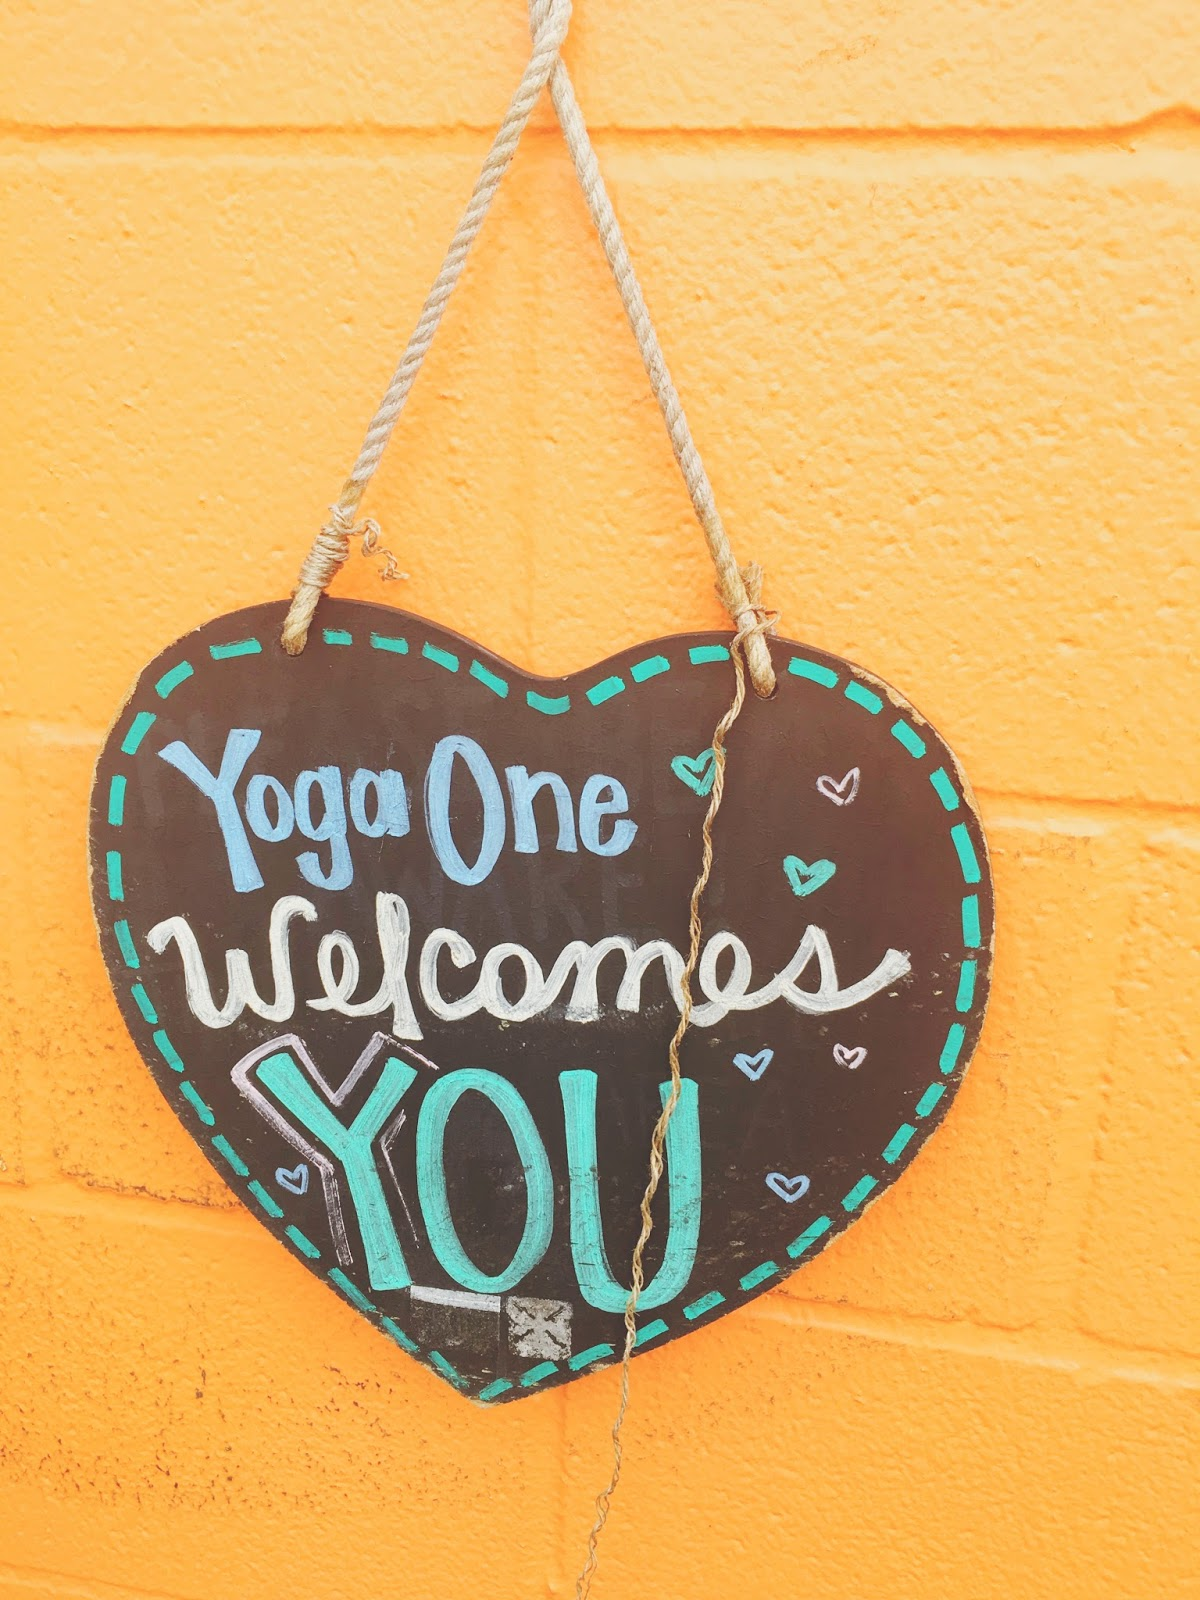 YogaOne - a studio participating in Houston's ClassPass program